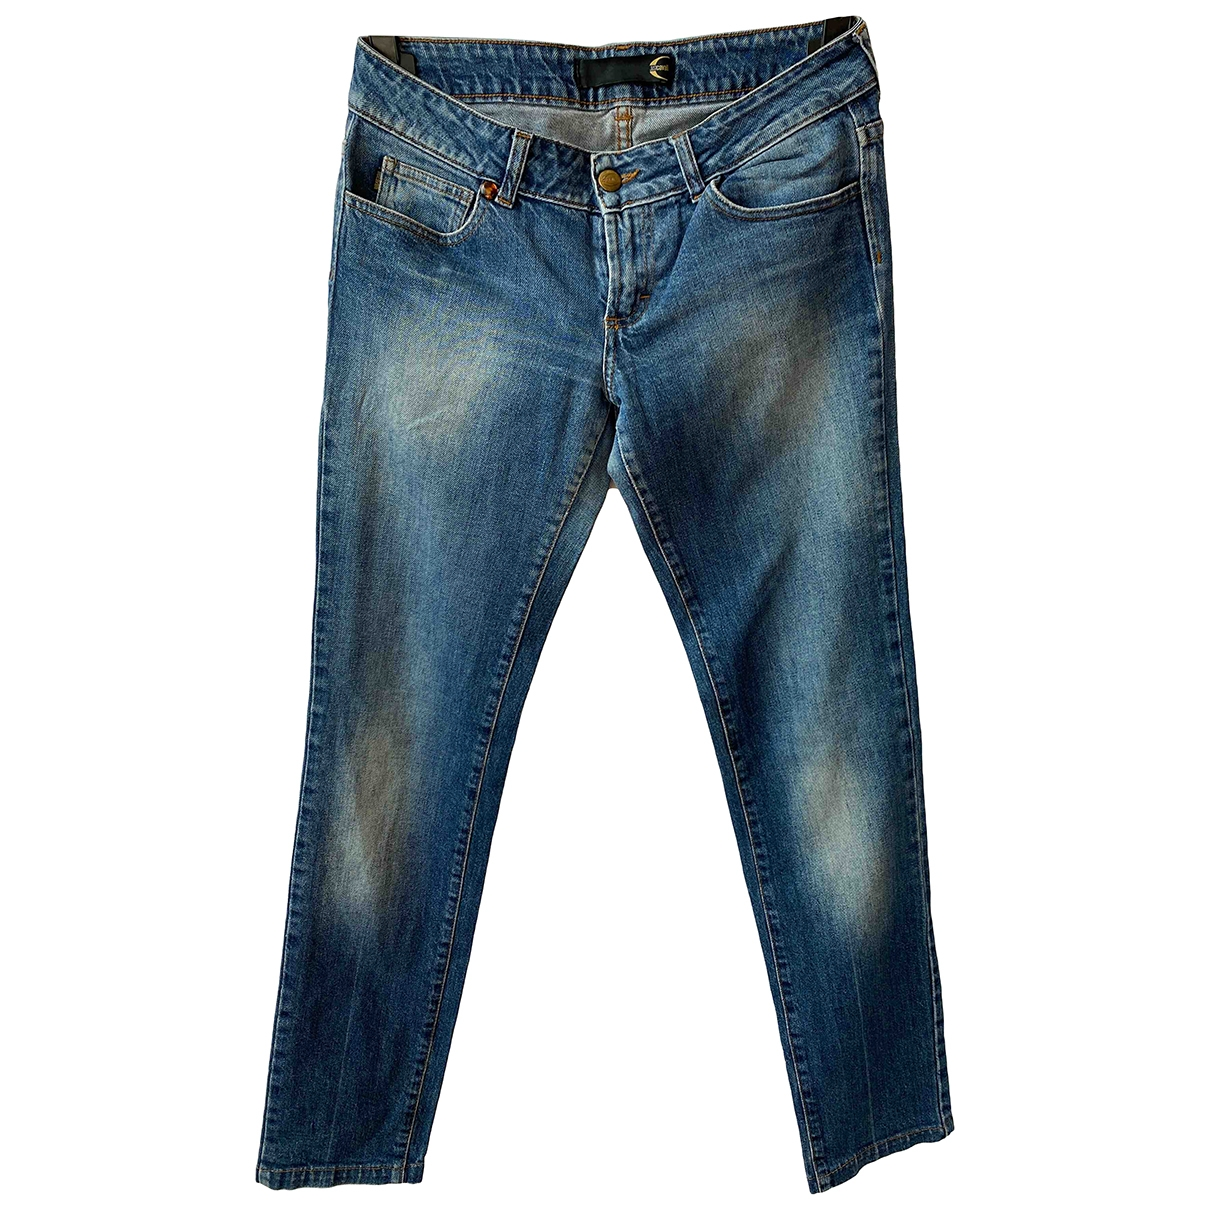 Just Cavalli \N Blue Cotton - elasthane Jeans for Women 28 US